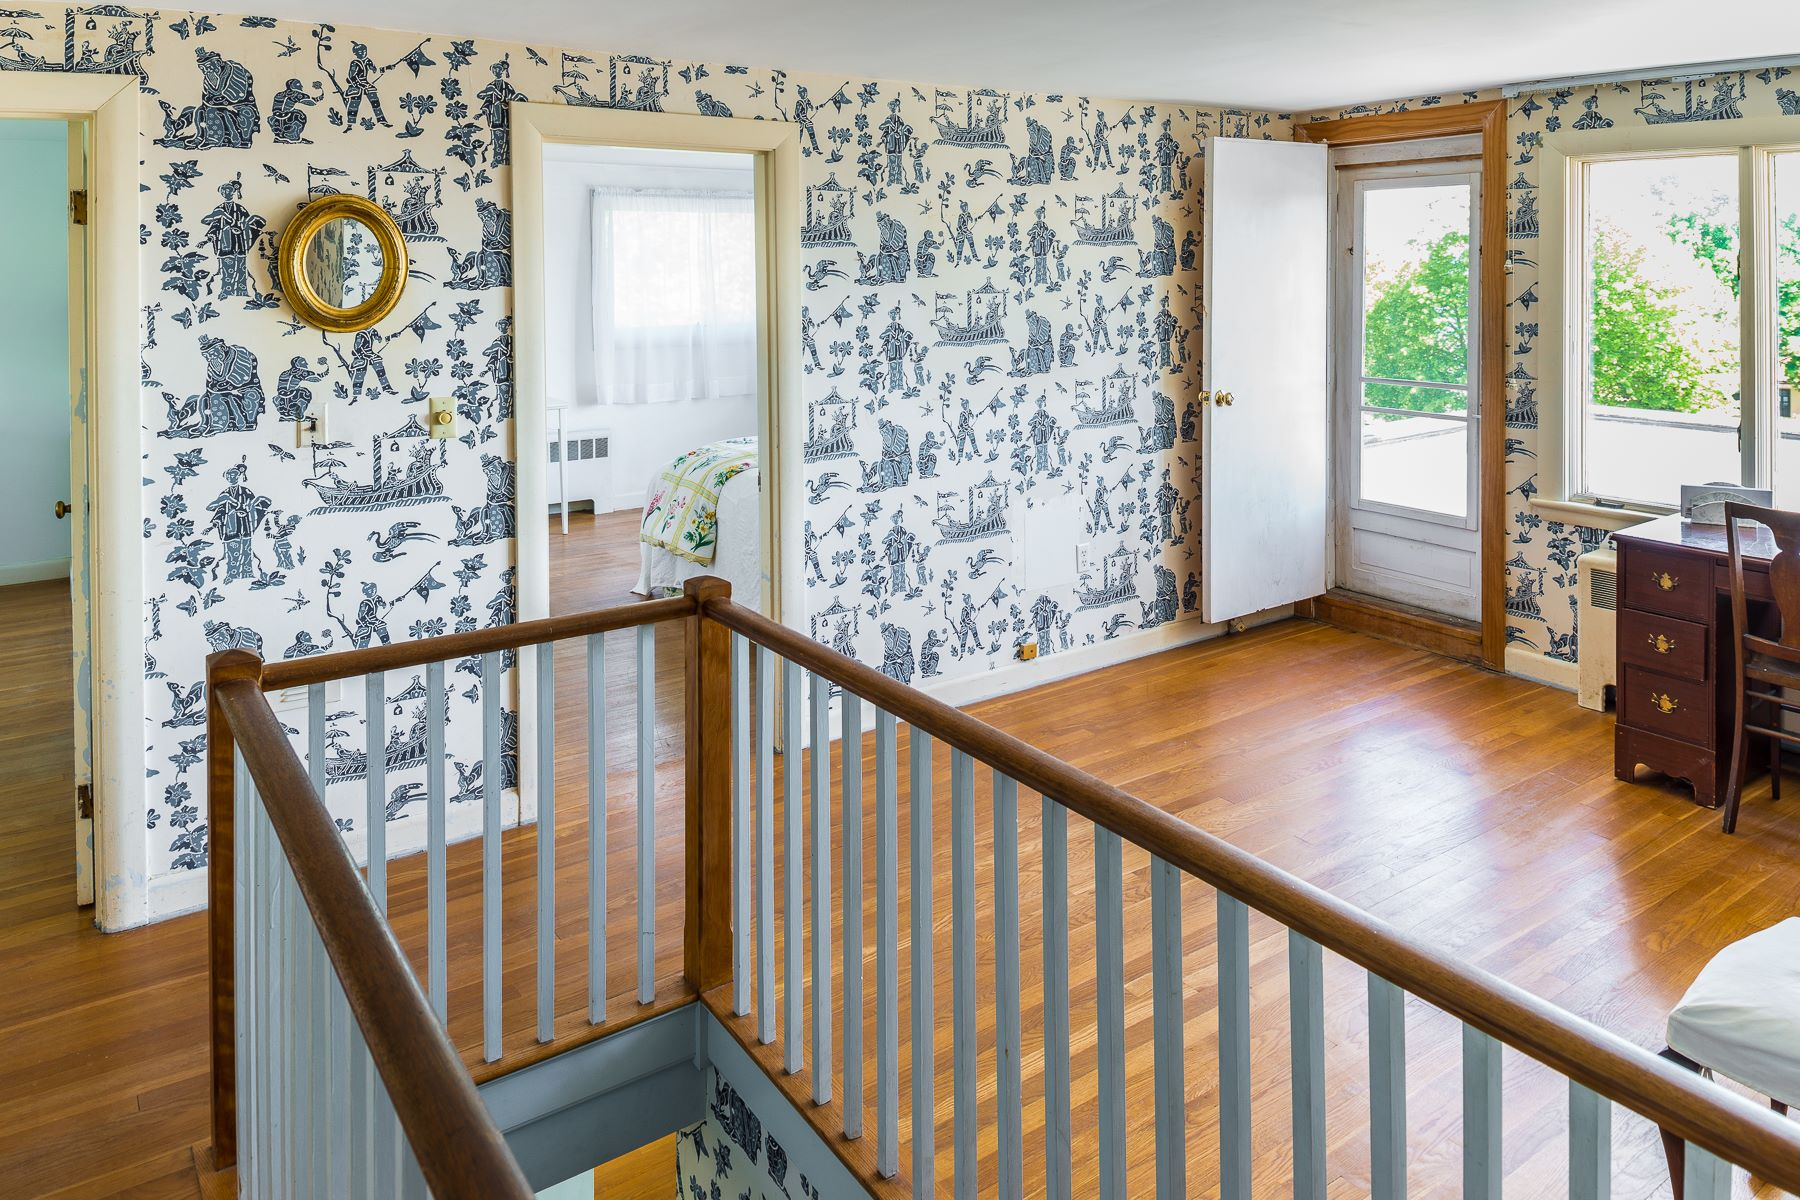 Additional photo for property listing at Classic and Stately 5BR/4BA Colonial with Dazzling Ocean Views 312 Ocean Avenue Marblehead, Massachusetts 01945 United States